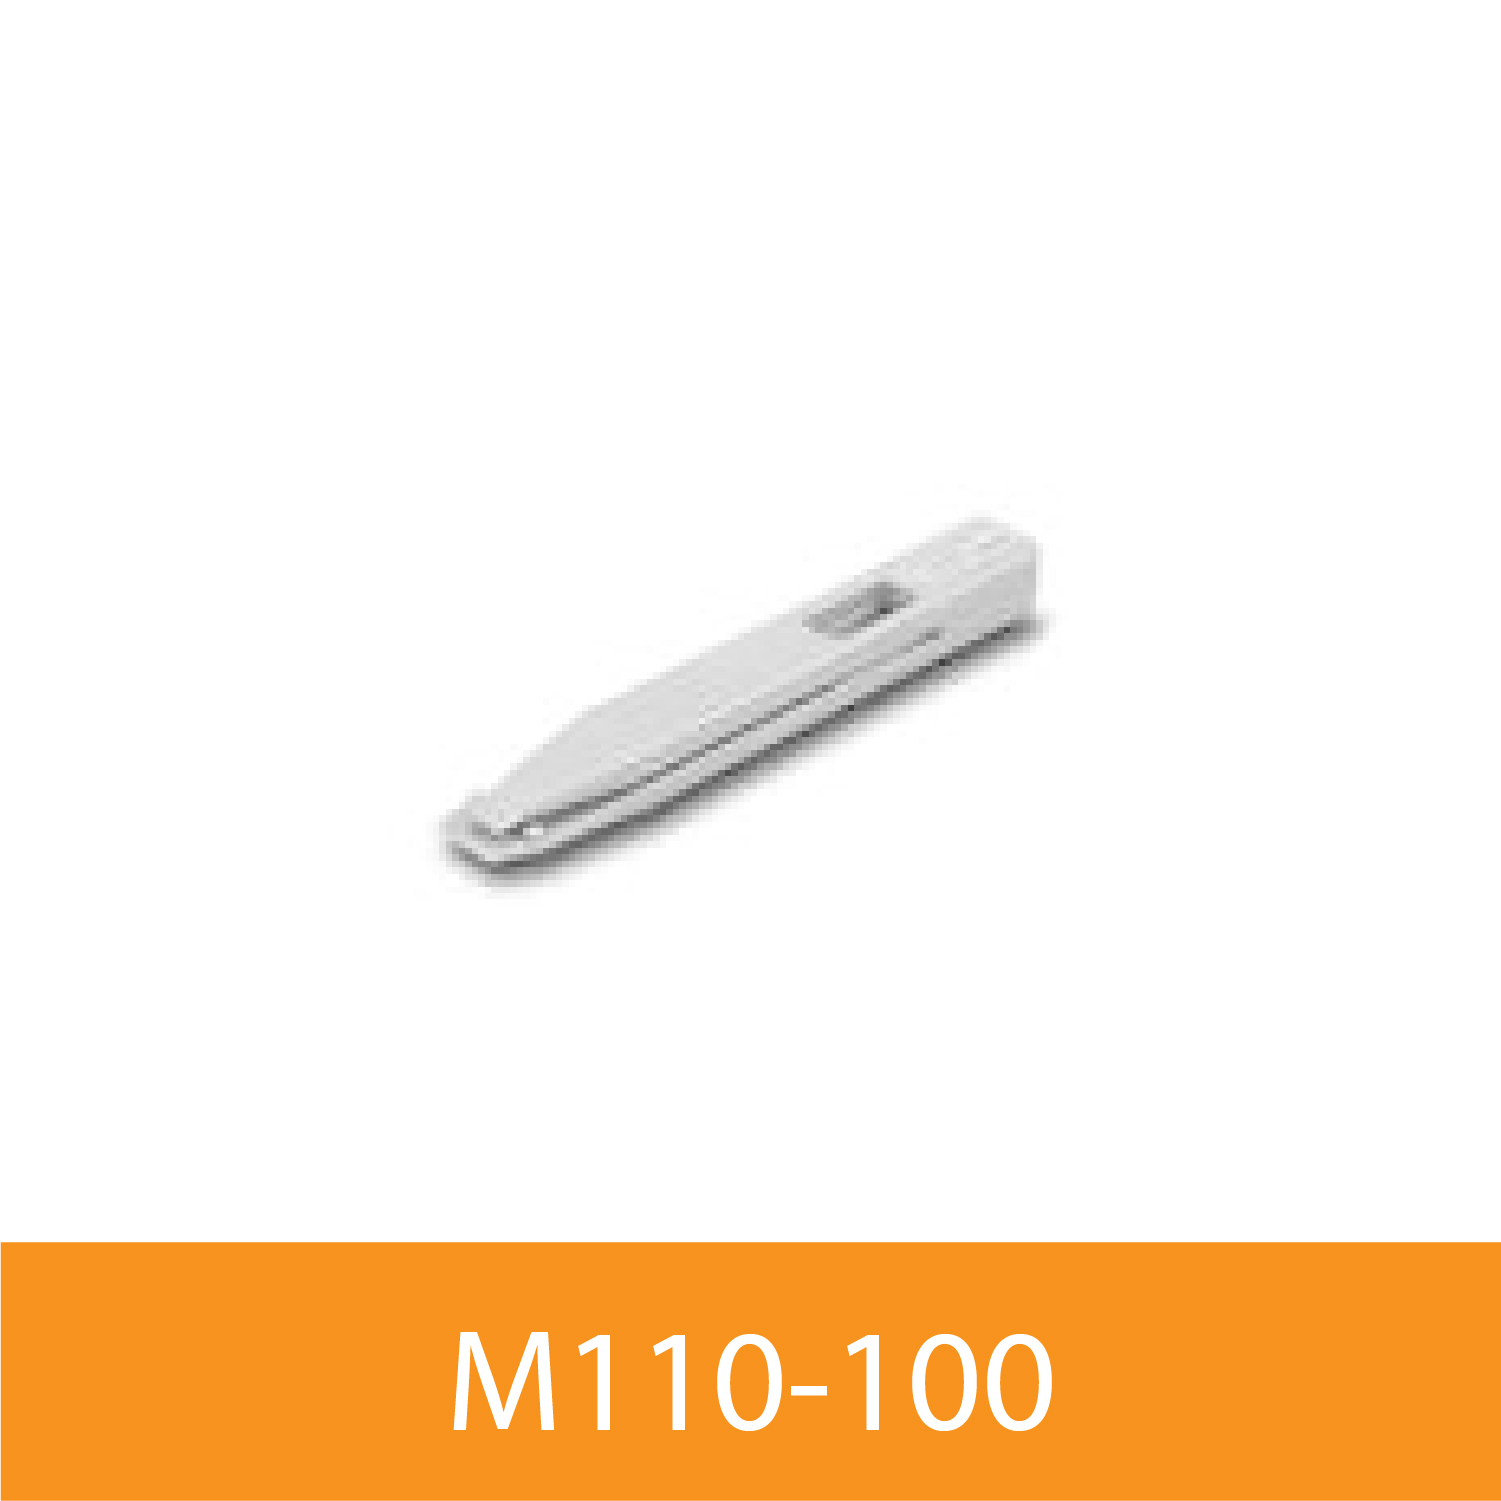 Wafer Tweezer (M110-100)